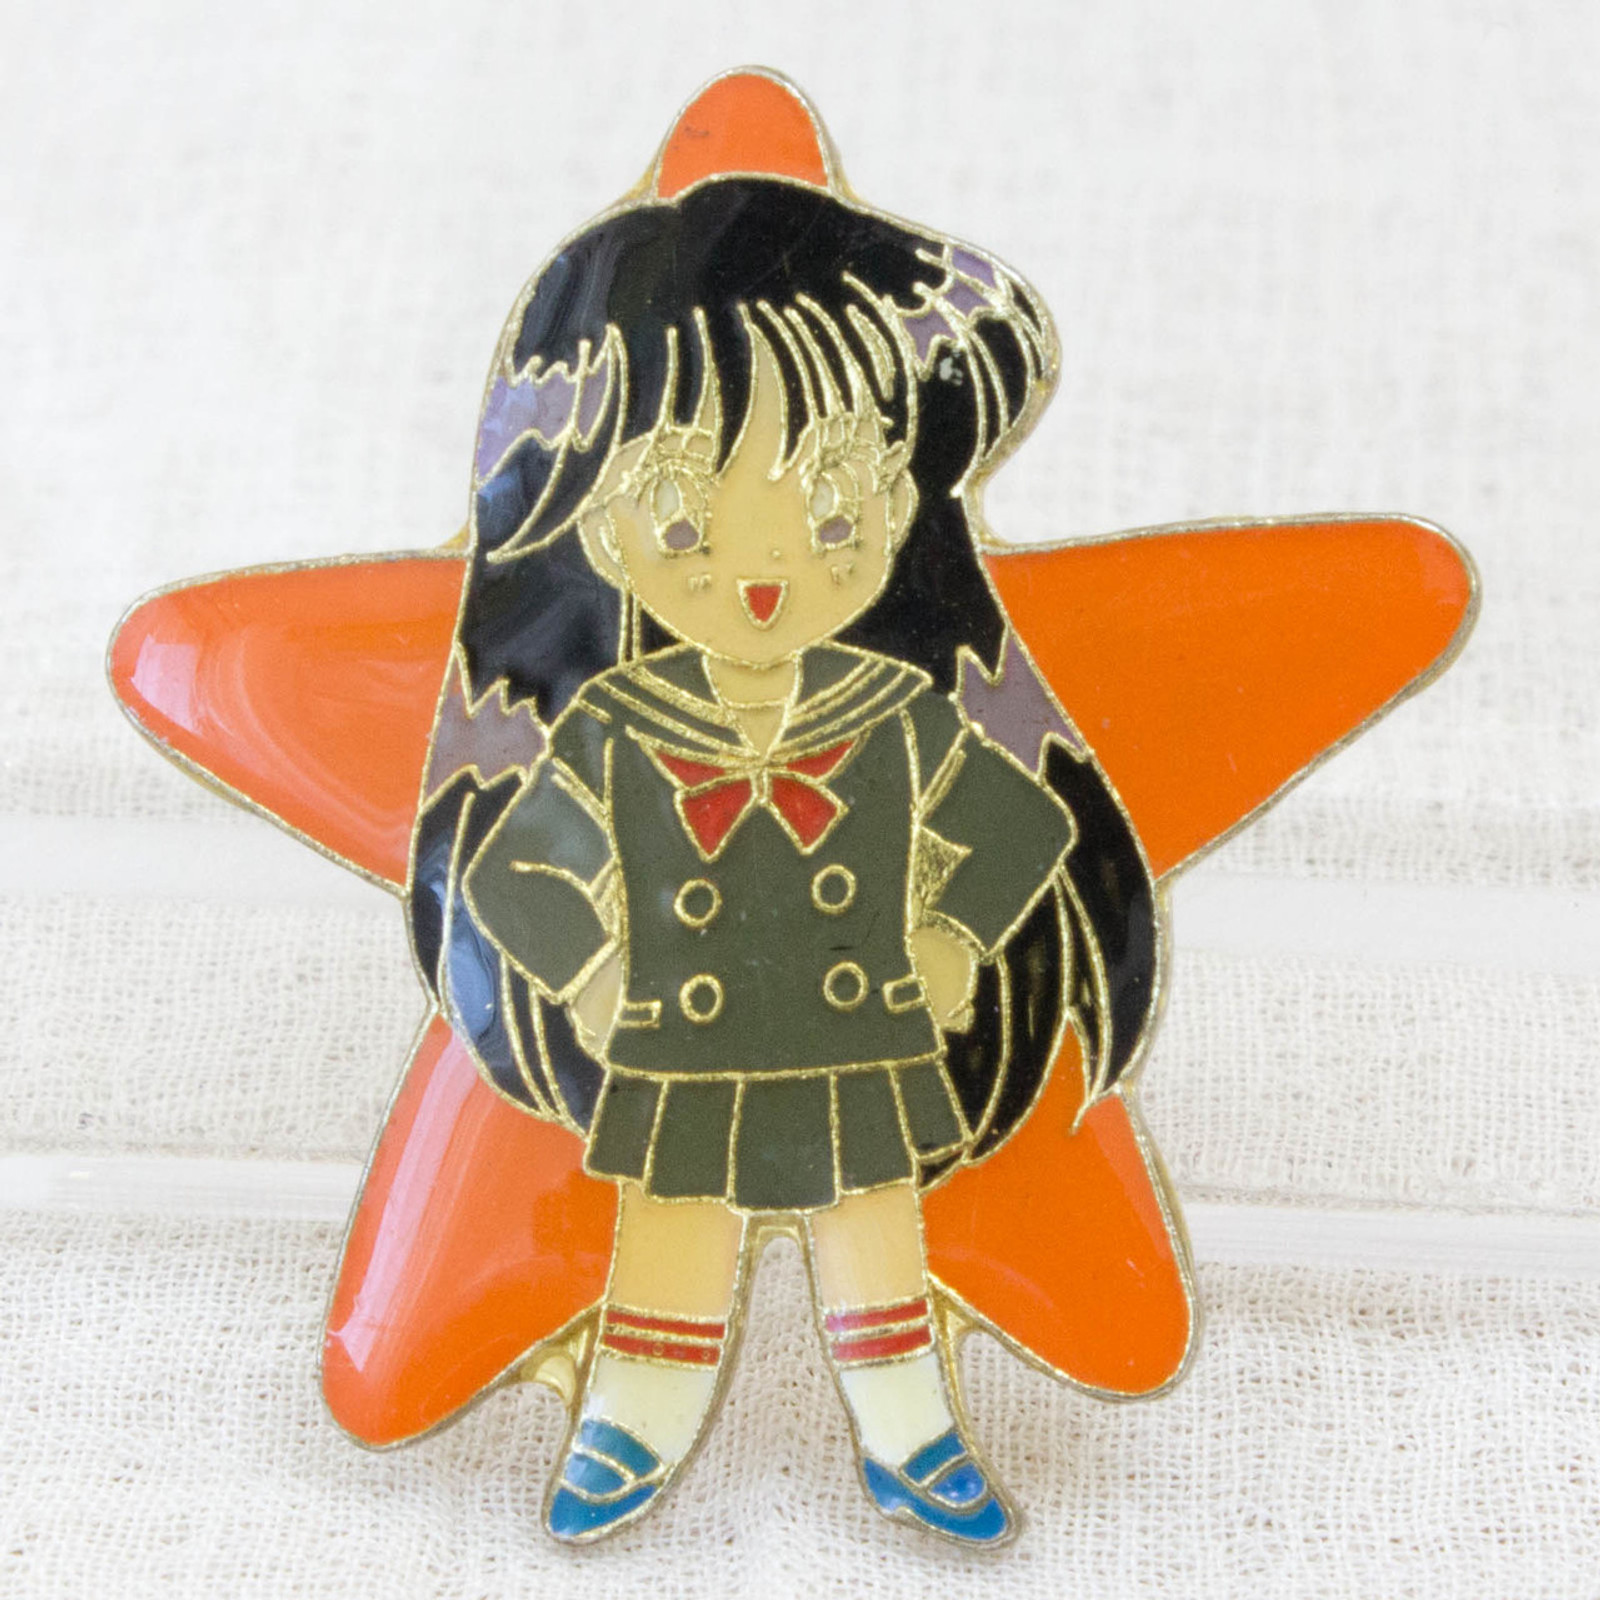 Sailor Moon Rei Hino (Sailor Mars) Metal Pins Badge JAPAN ANIME